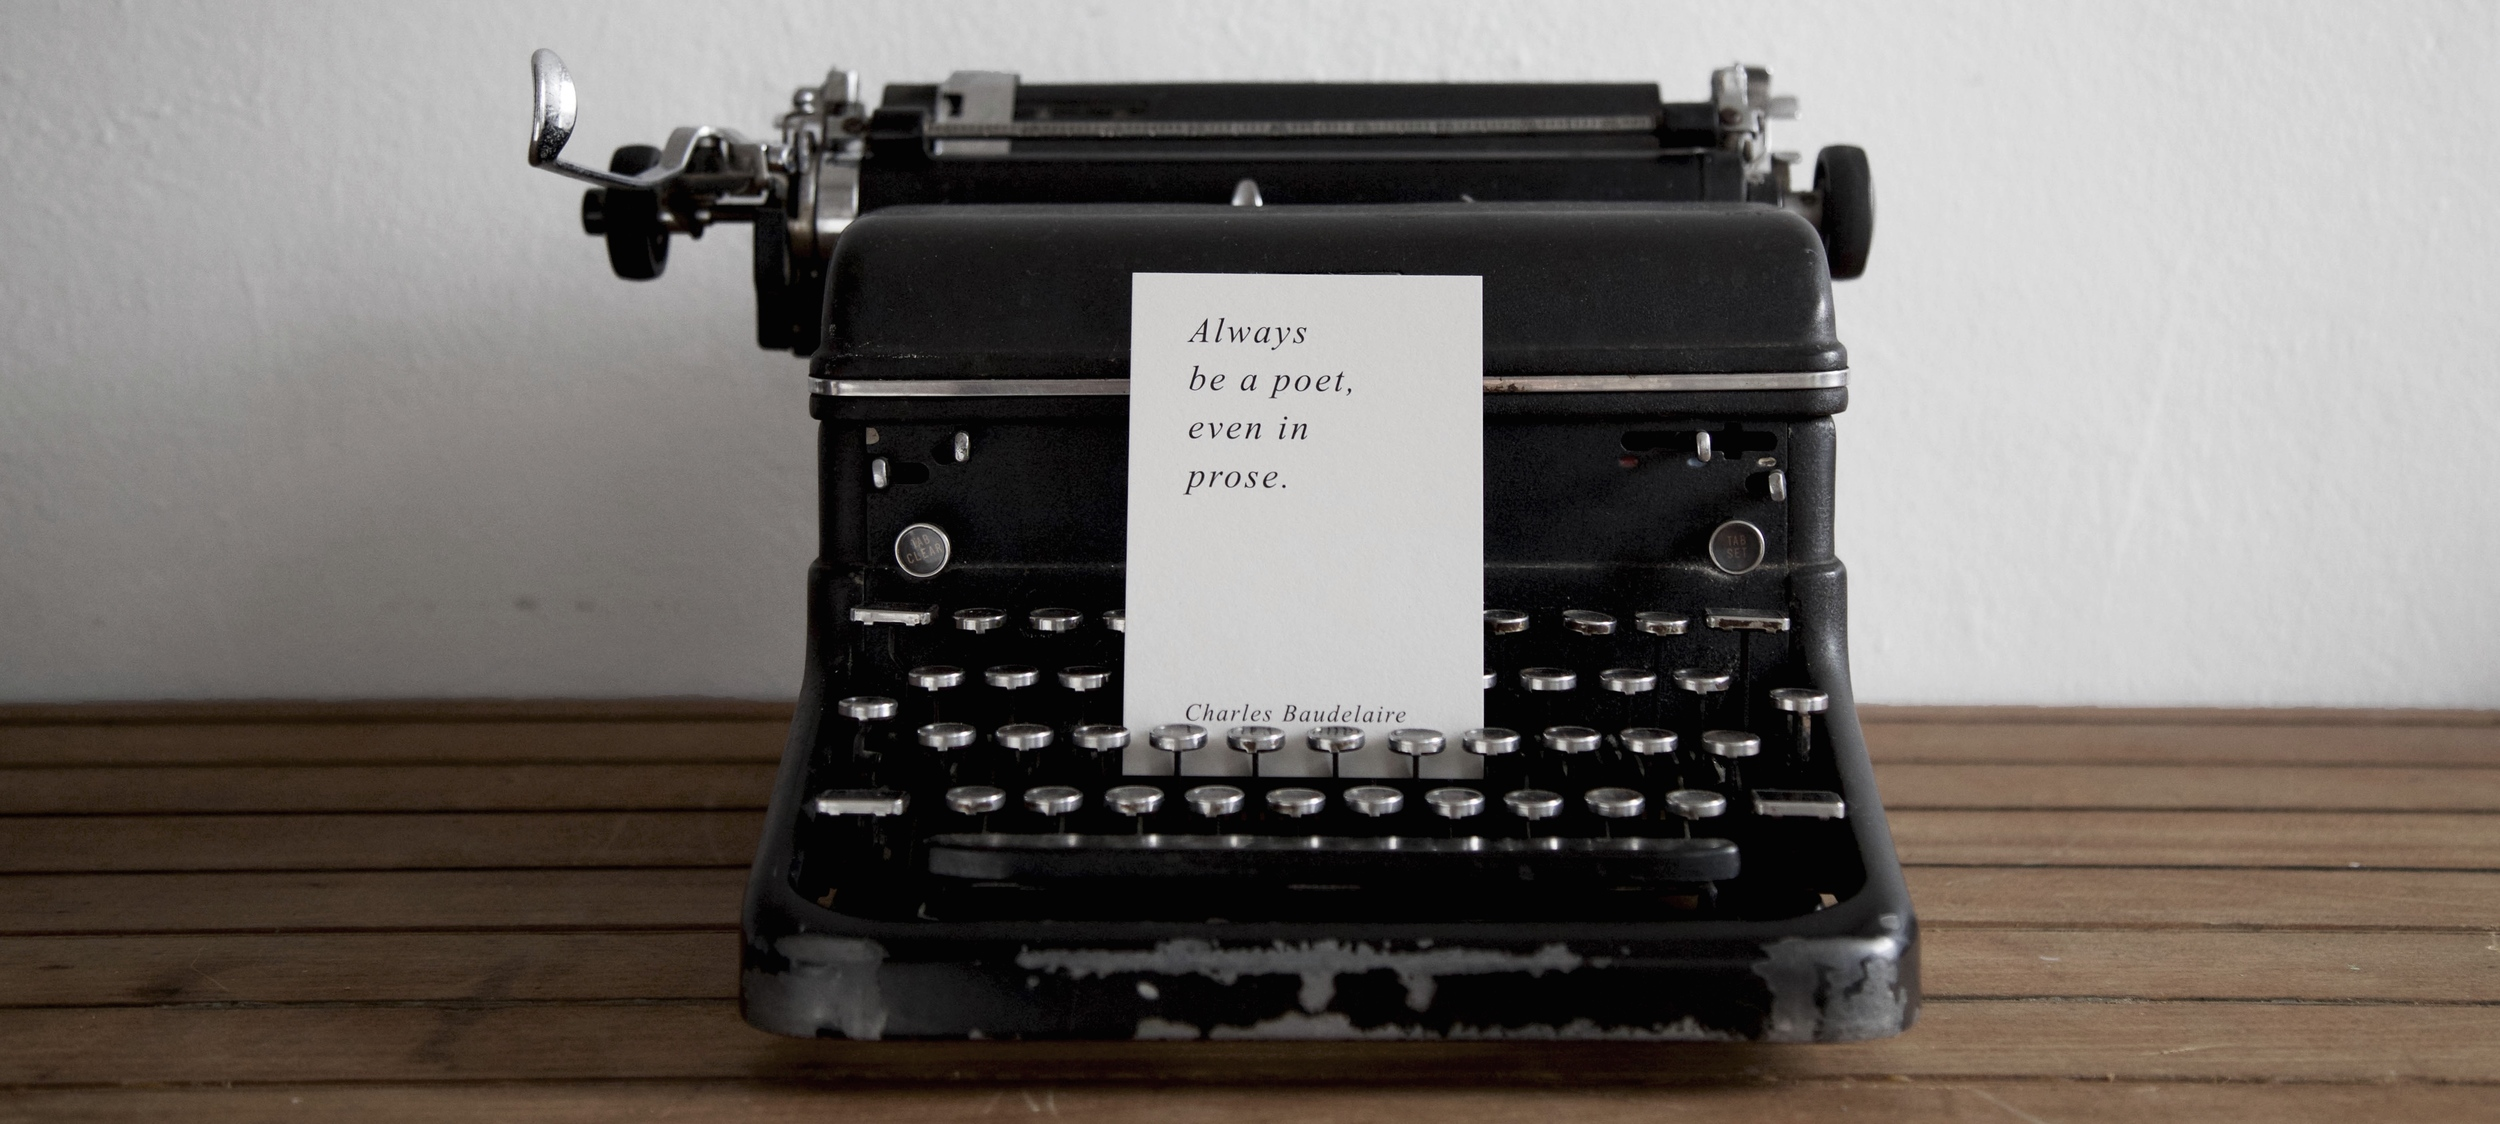 Typewriter Quote